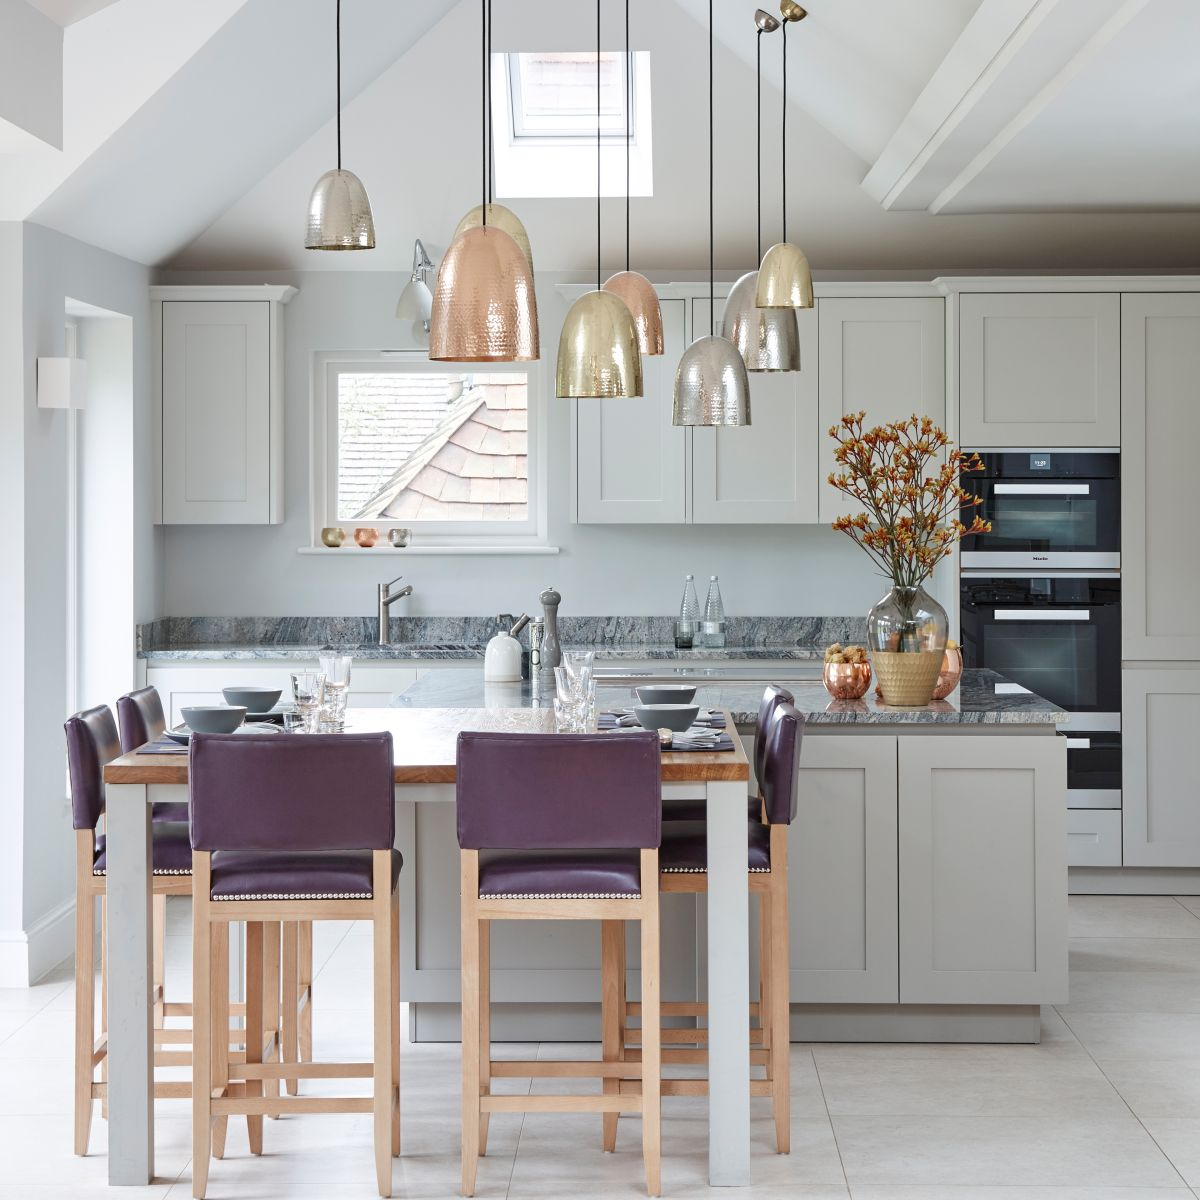 Lighting For The Kitchen: How To Plan Kitchen Lighting